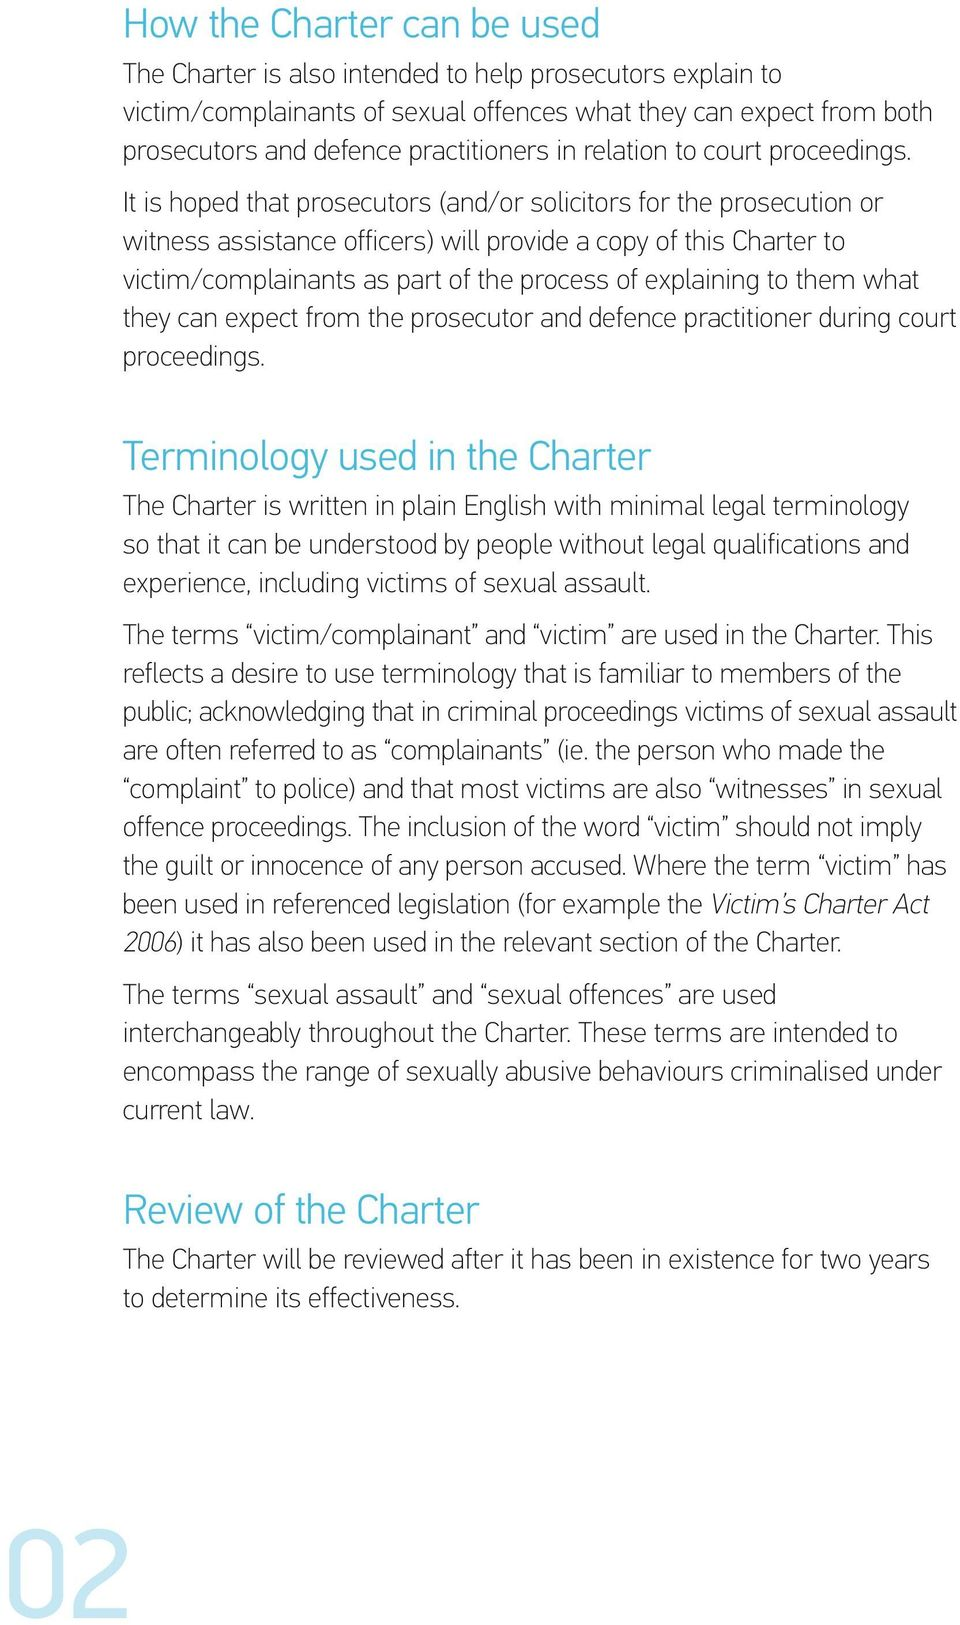 It is hoped that prosecutors (and/or solicitors for the prosecution or witness assistance officers) will provide a copy of this Charter to victim/complainants as part of the process of explaining to